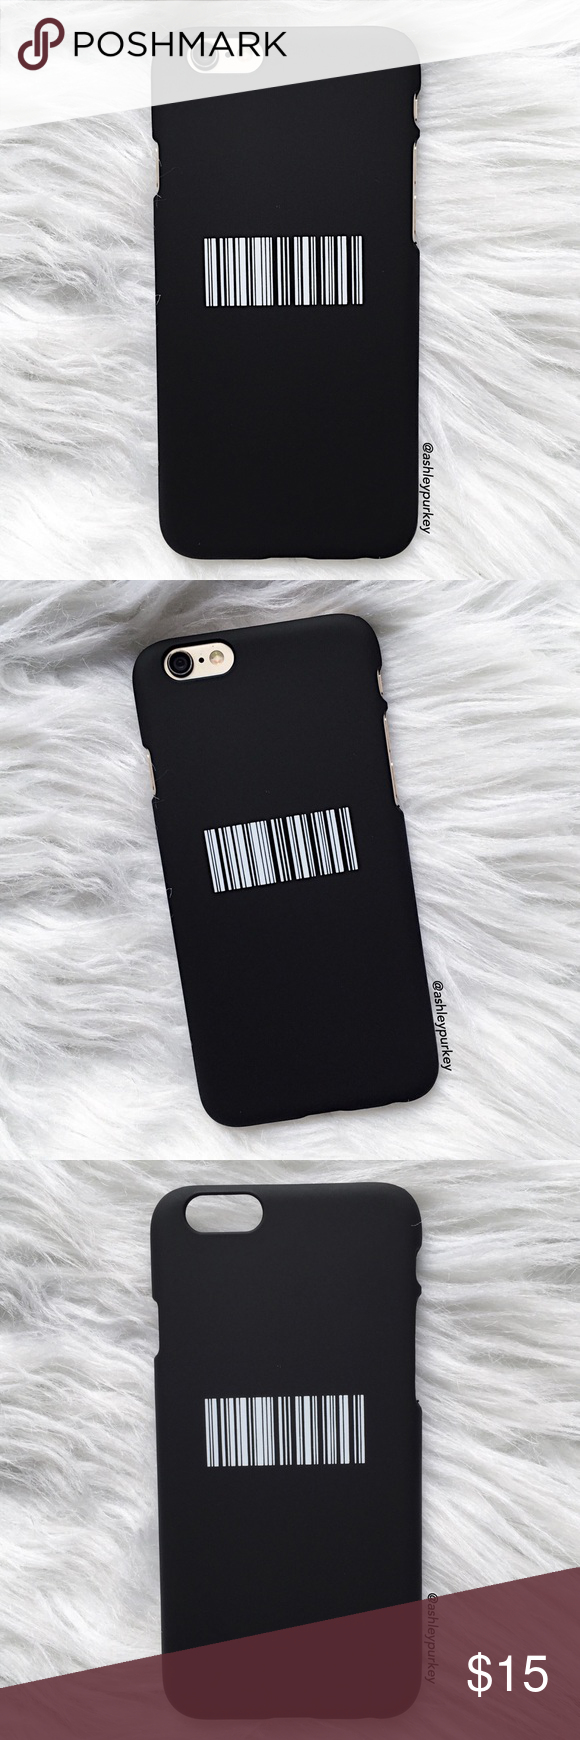 "Black and white barcode iPhone 6/6s phone case •iPhone 6/6s (4.7"")  •hard plastic   •phone not included   •no trades    *please make sure you purchase the correct size case. i am not responsible if you purchase the wrong size  item #: 21 B-Long Boutique  Accessories Phone Cases"